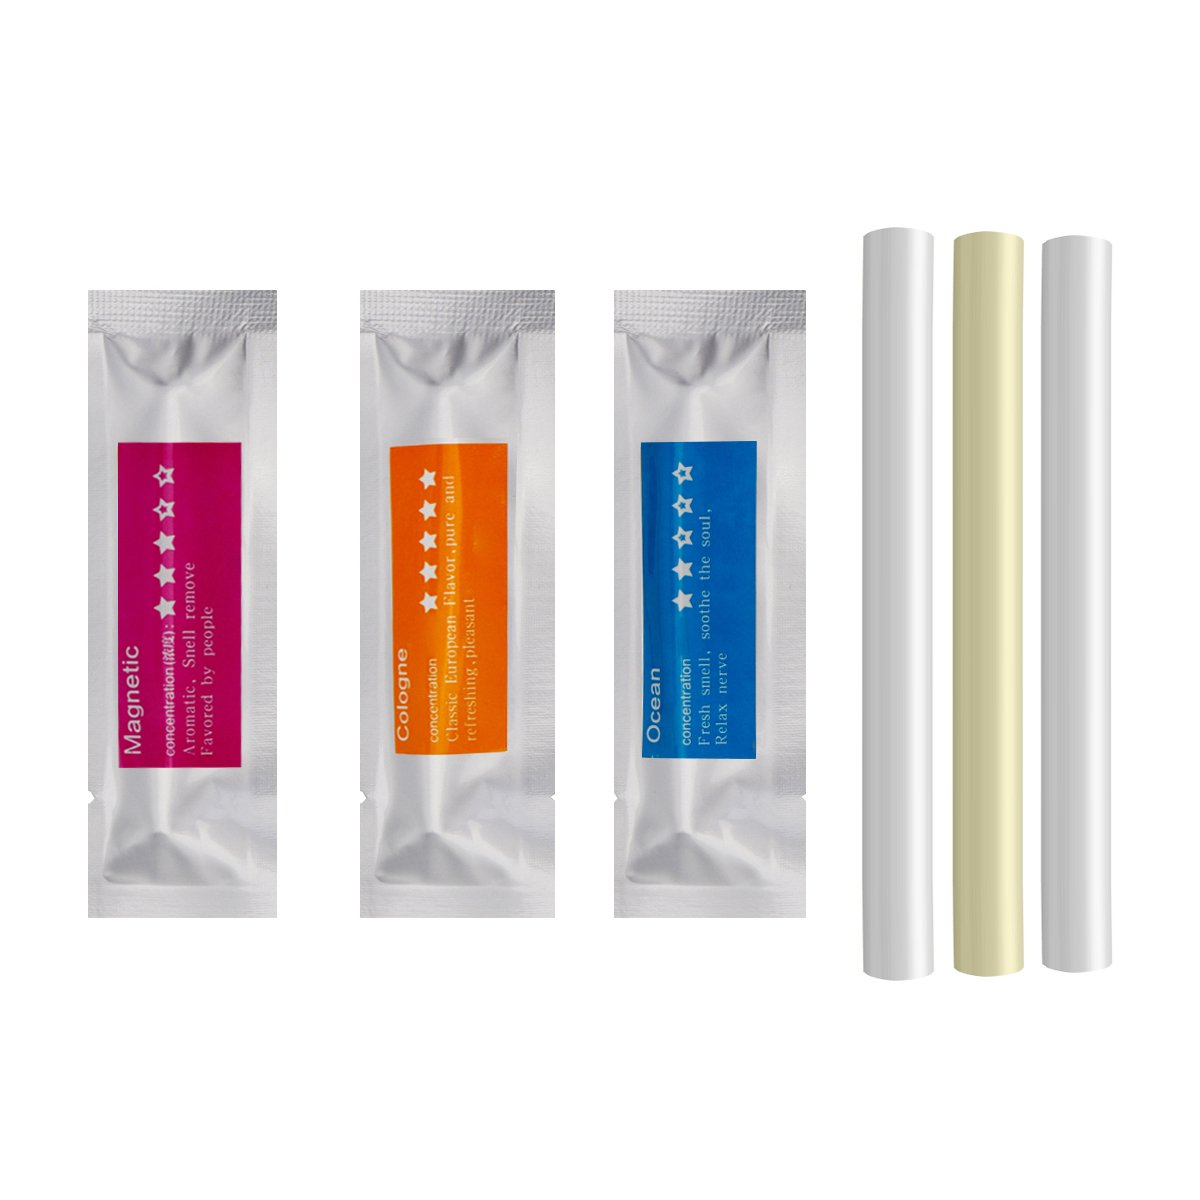 Refills for Solid Air Freshener, Replacement Aroma Bars - Aroma 3 Sponge Sticks (Cologne, Ocean, Magnetic) She-Lin